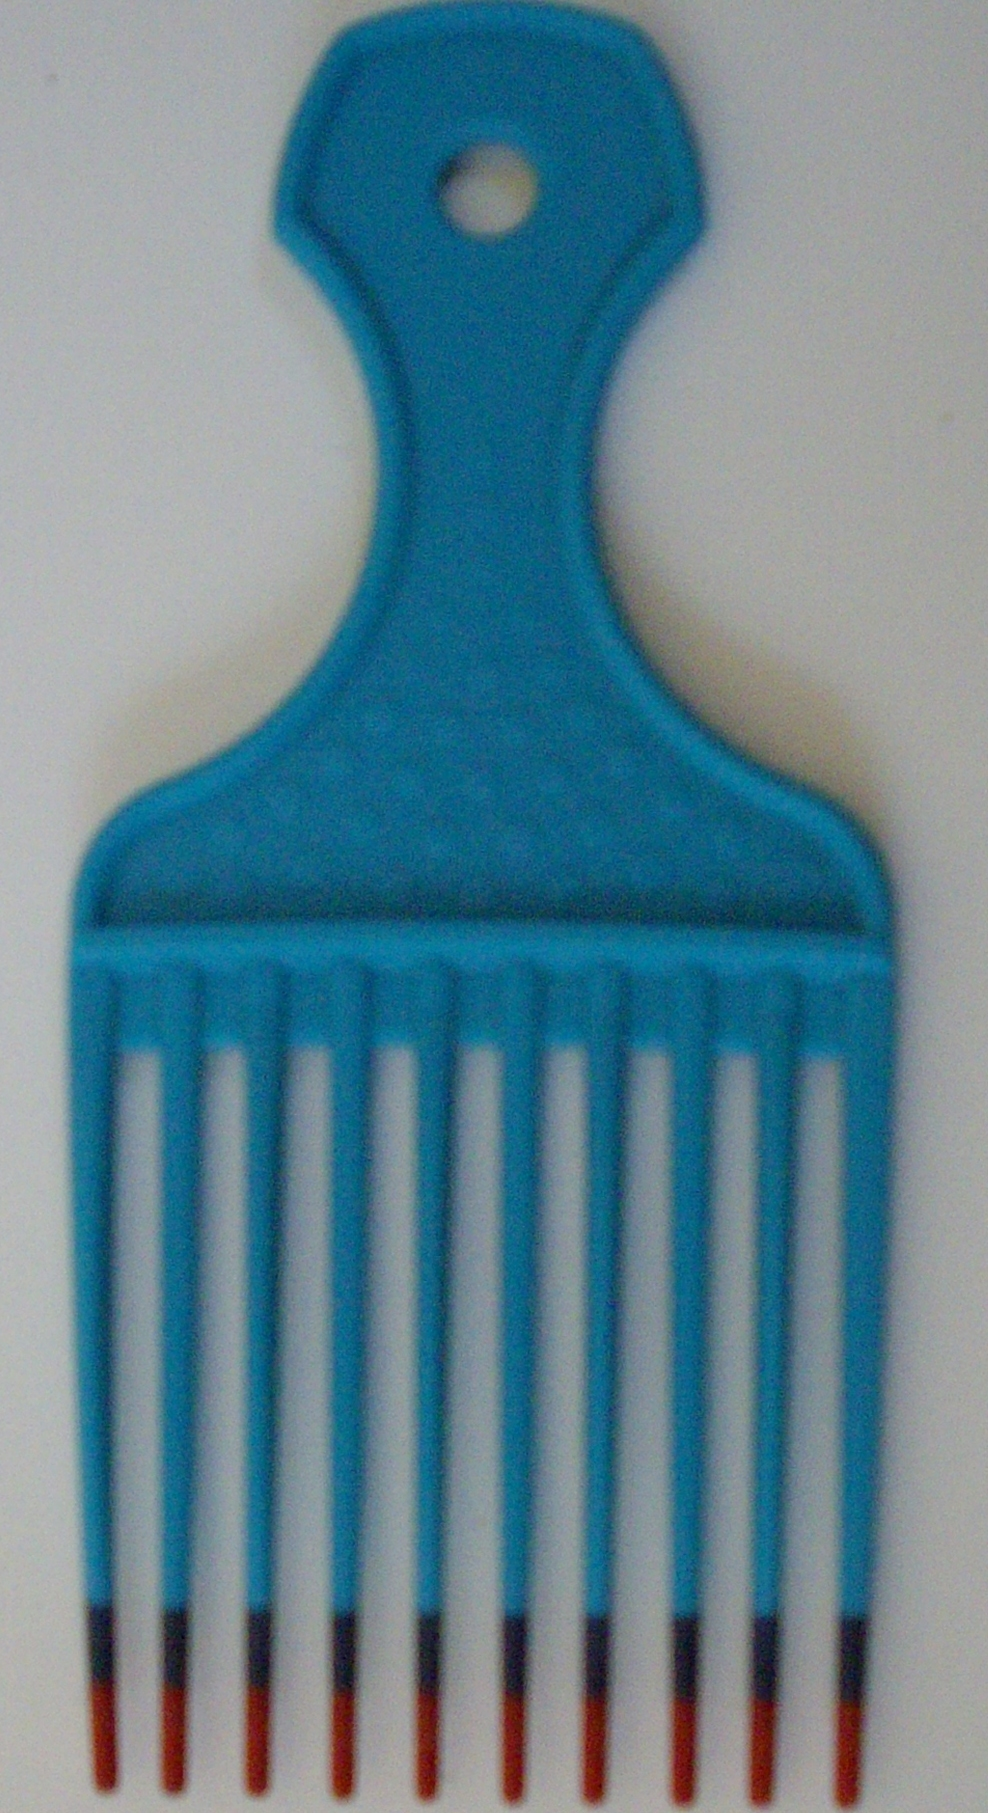 Hot dip comb medium